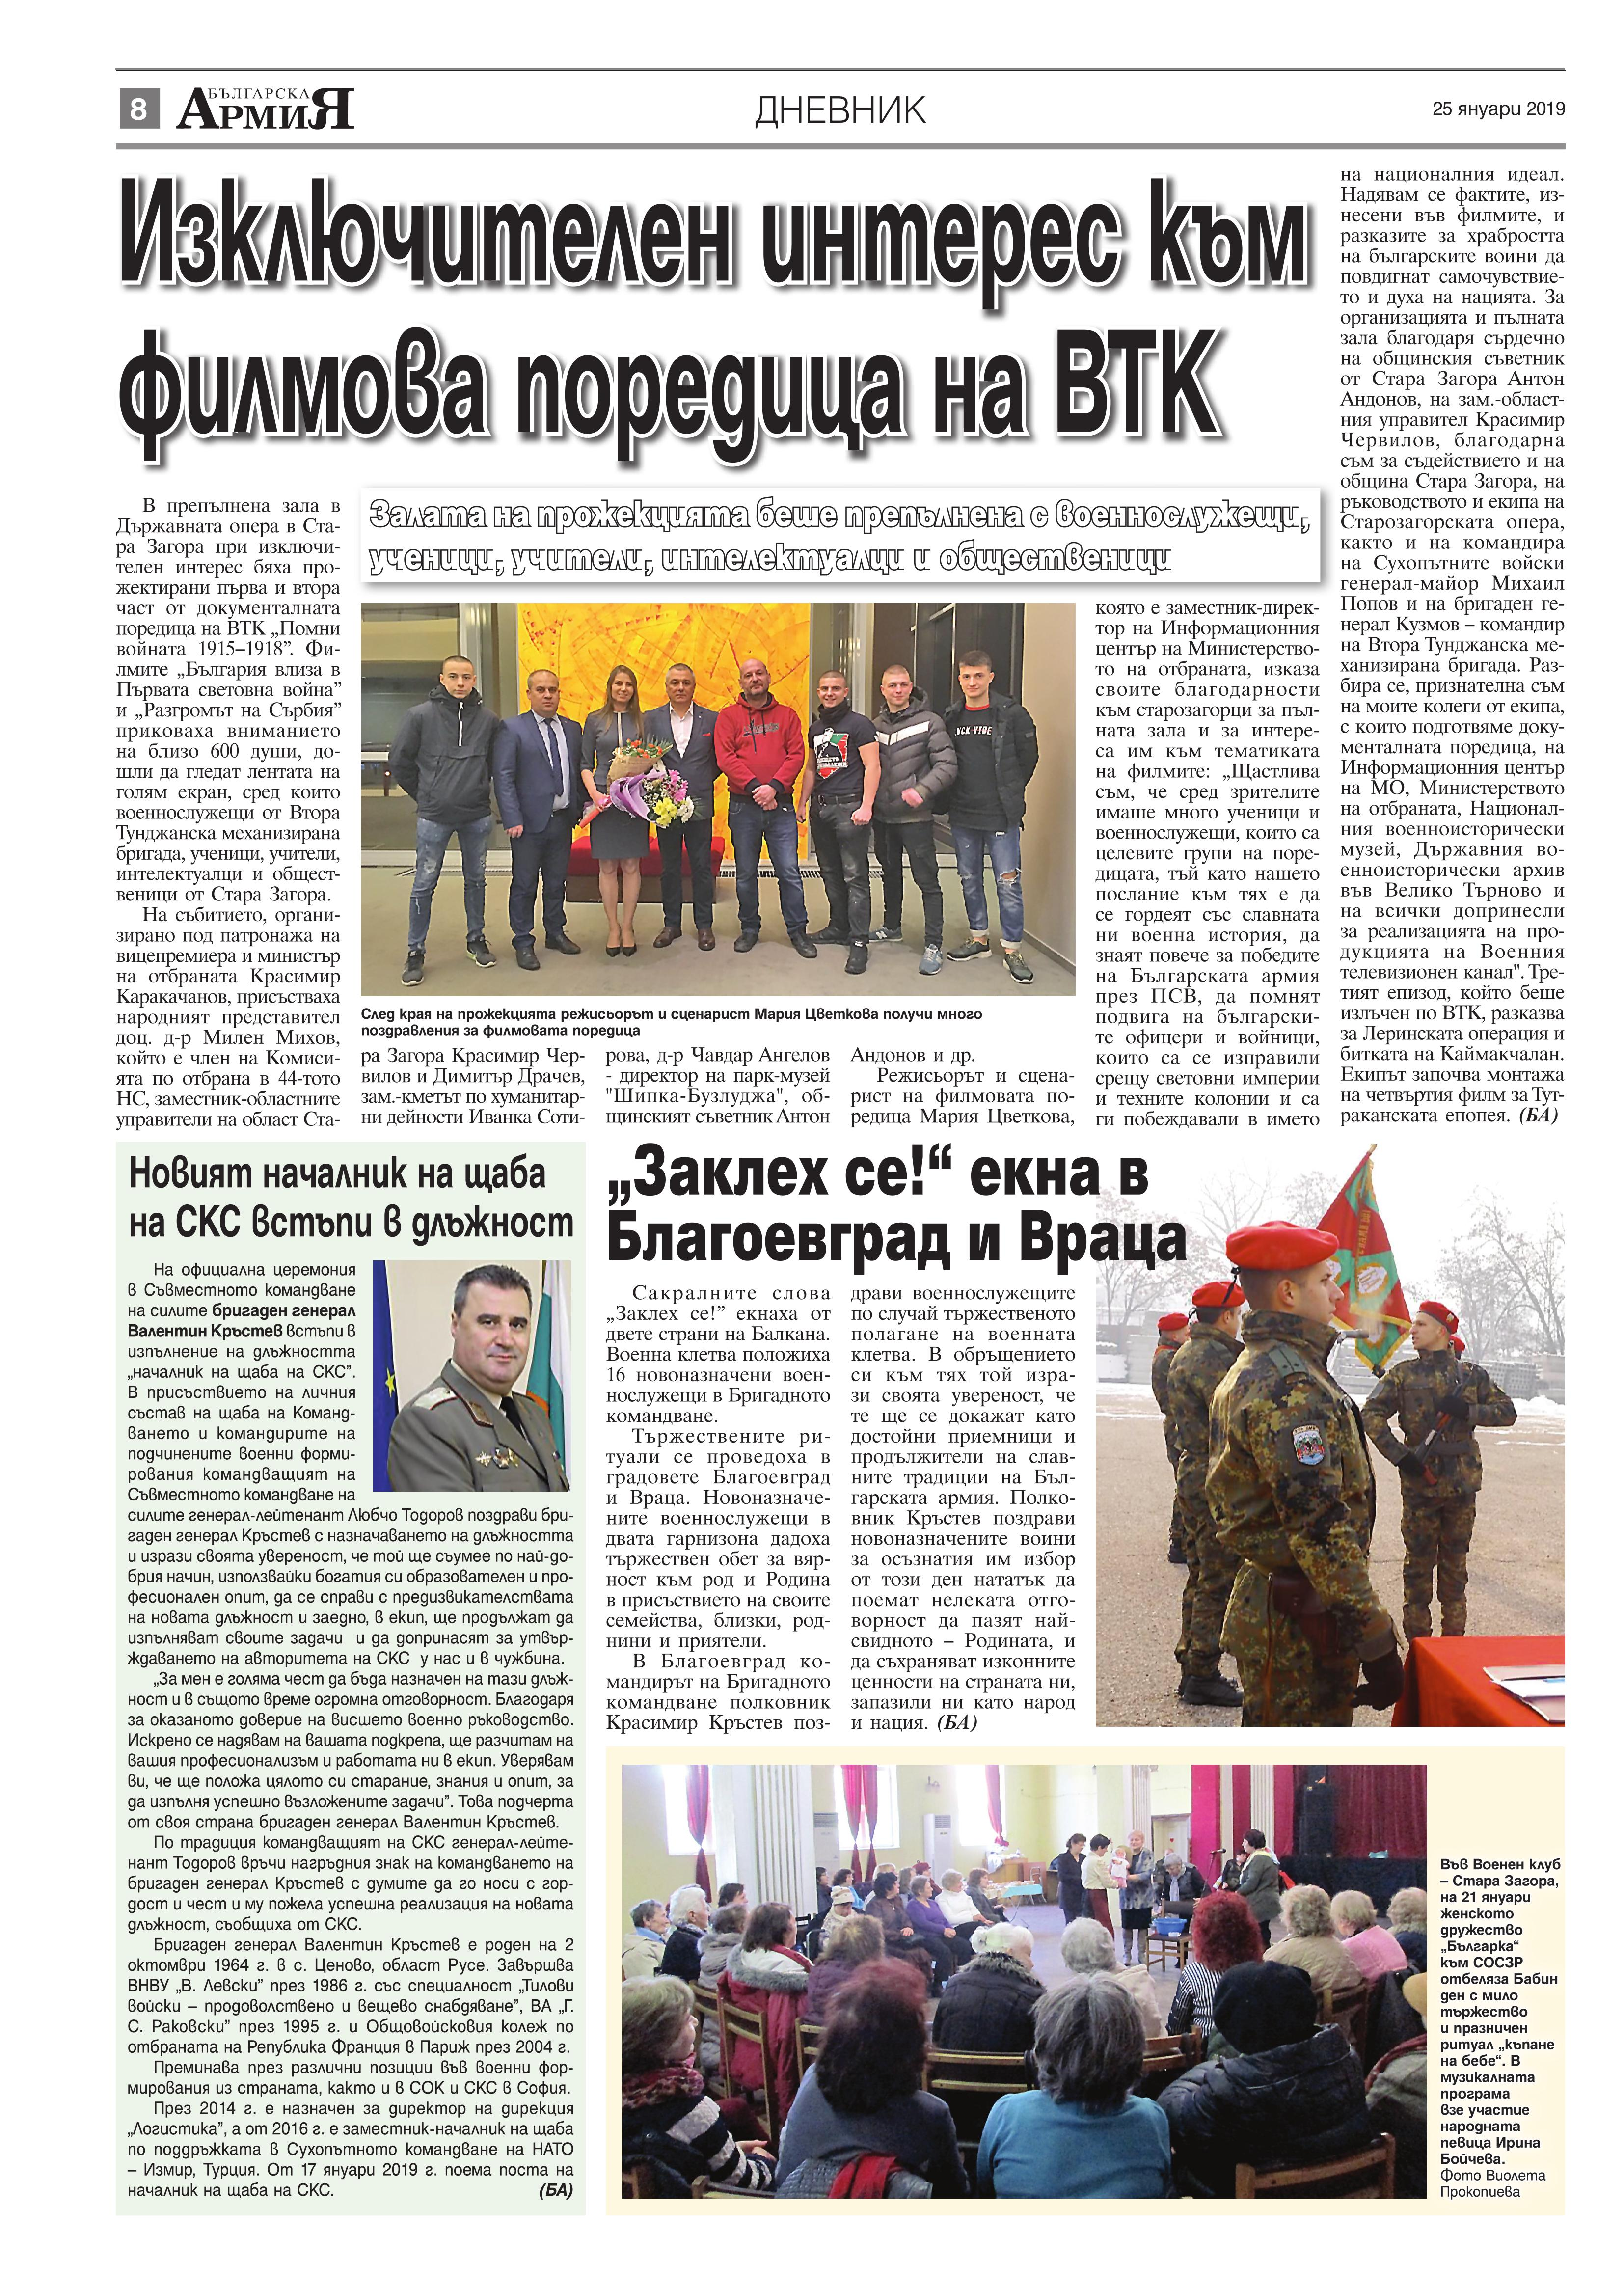 https://armymedia.bg/wp-content/uploads/2015/06/08.page1_-78.jpg